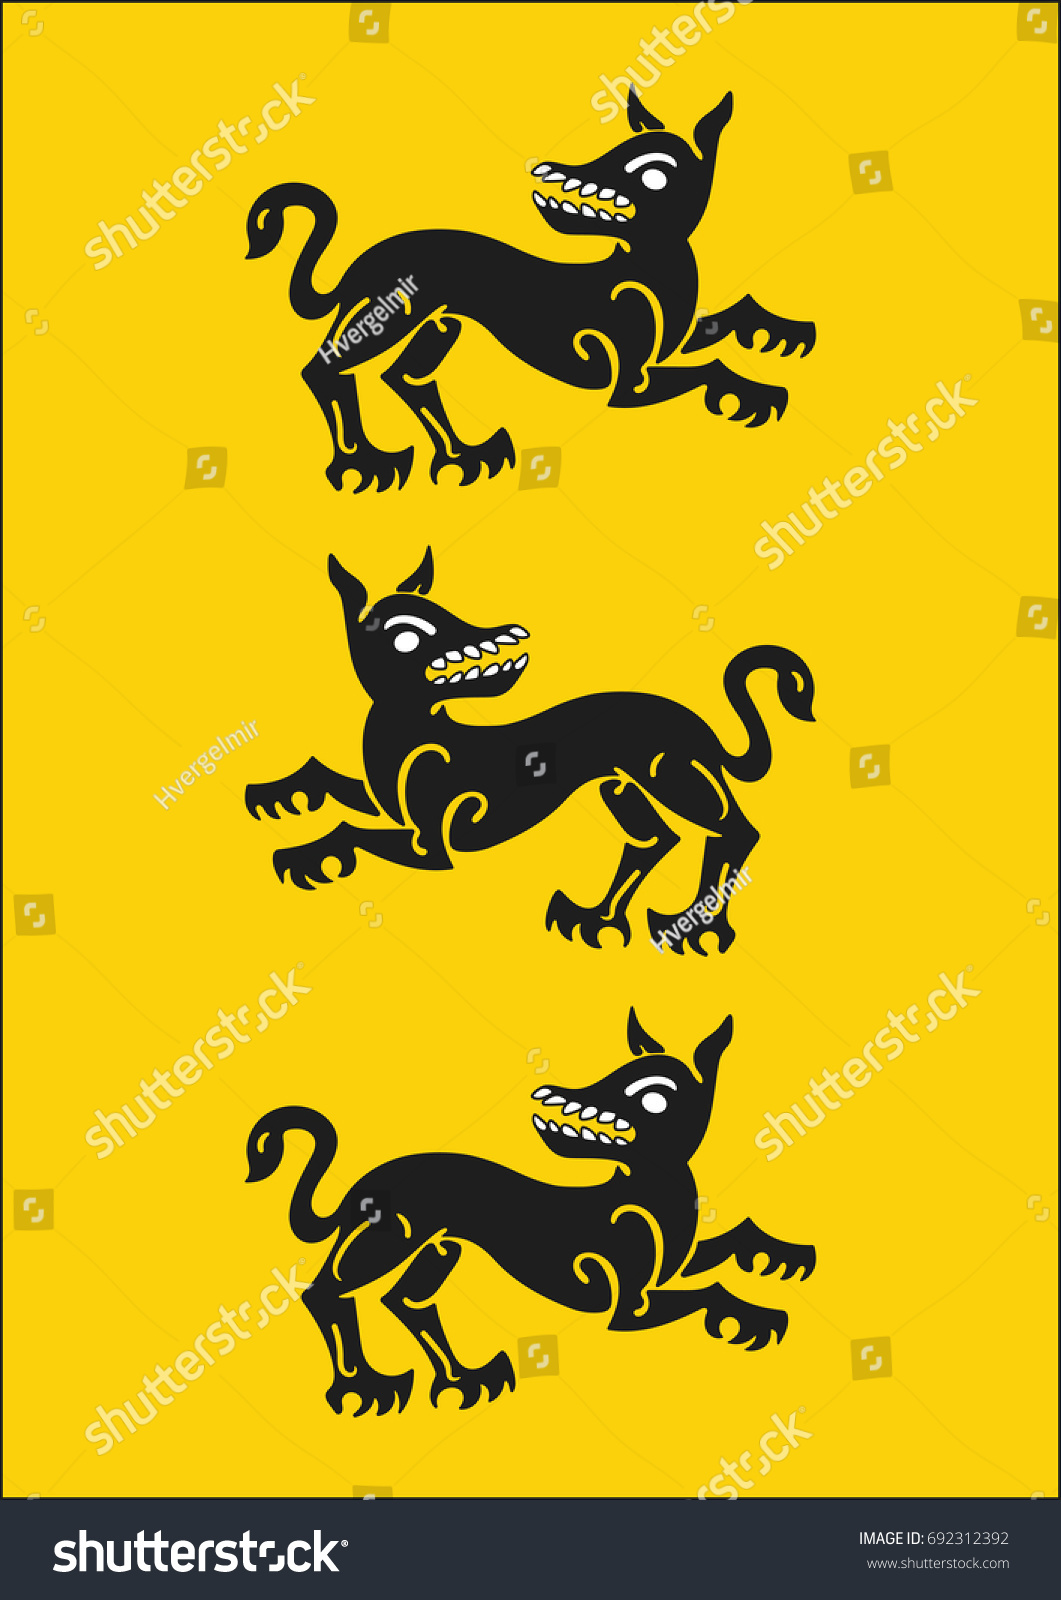 Redraw House Clegane Heraldic Sign Song Stock Vector Royalty Free